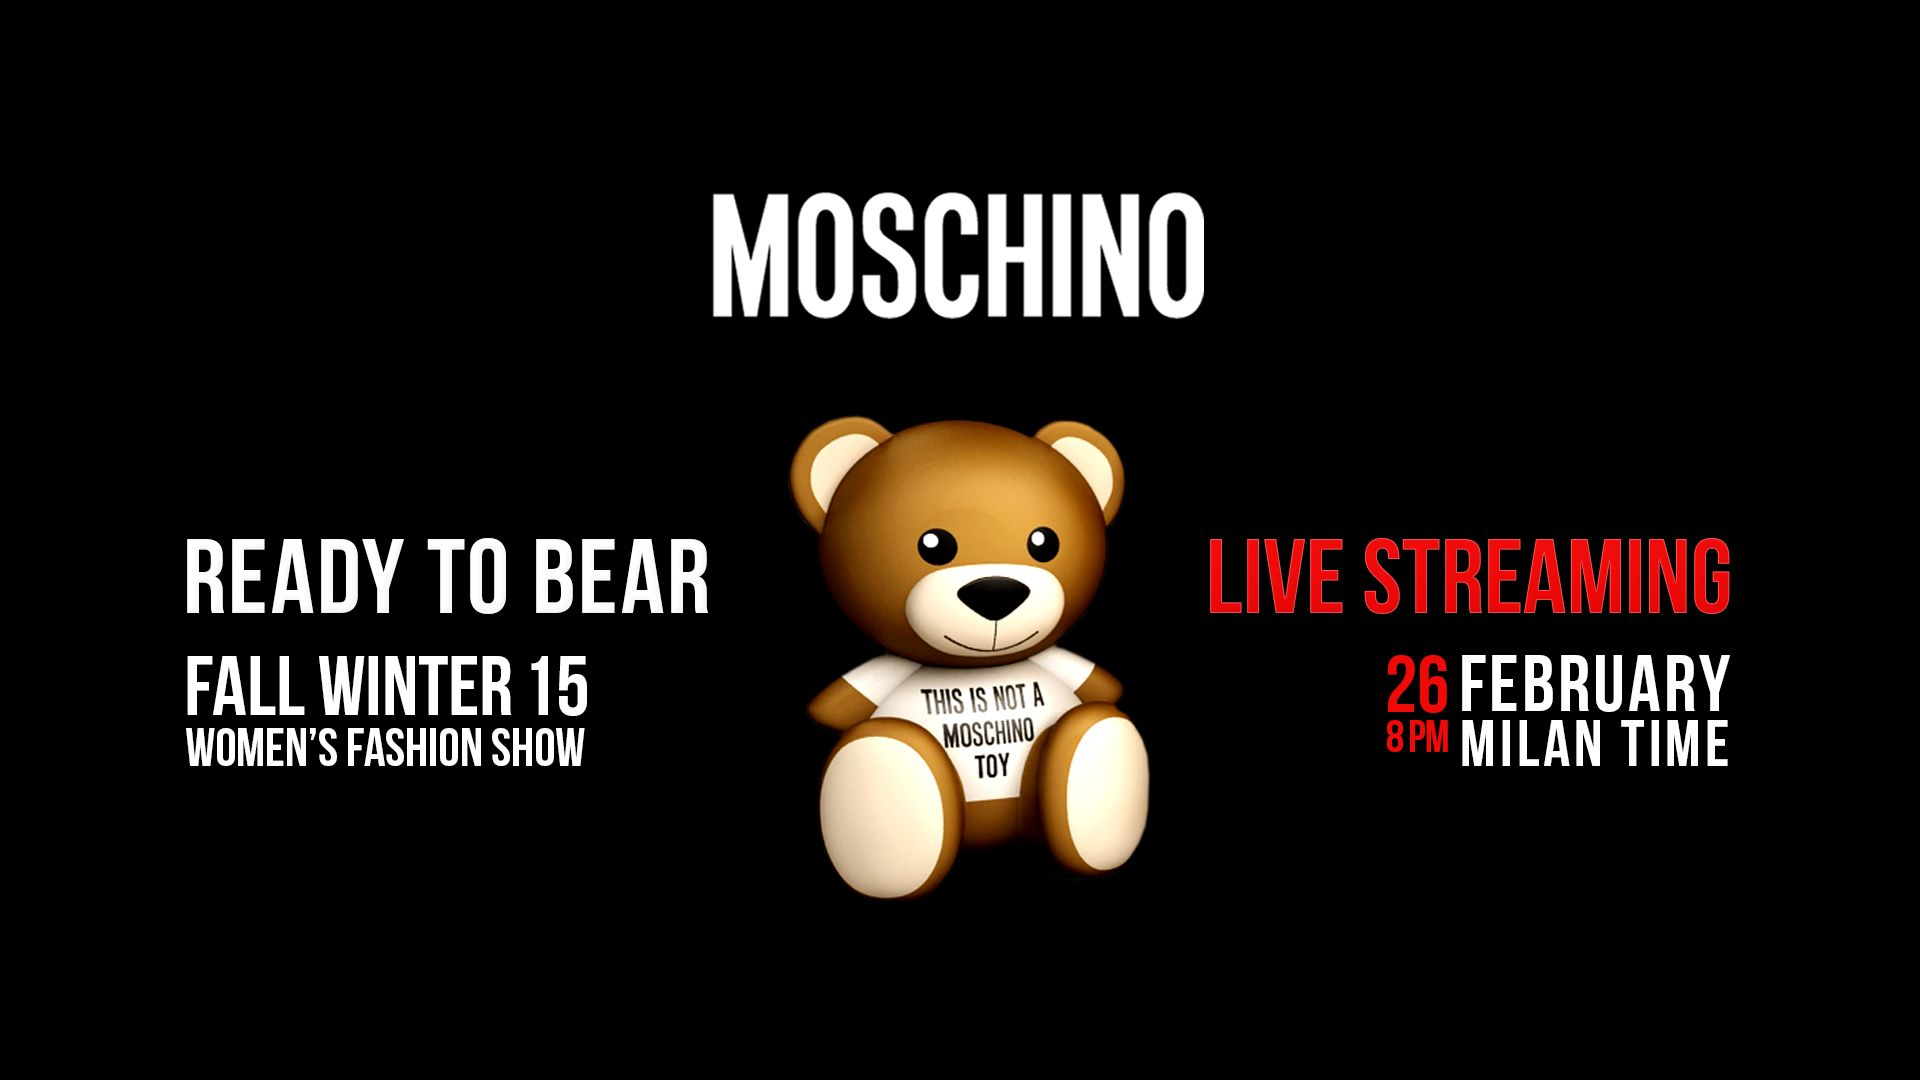 MOSCHINO FALL WINTER 2015 WOMENS FASHION SHOW LIVE STREAMING 1920x1080